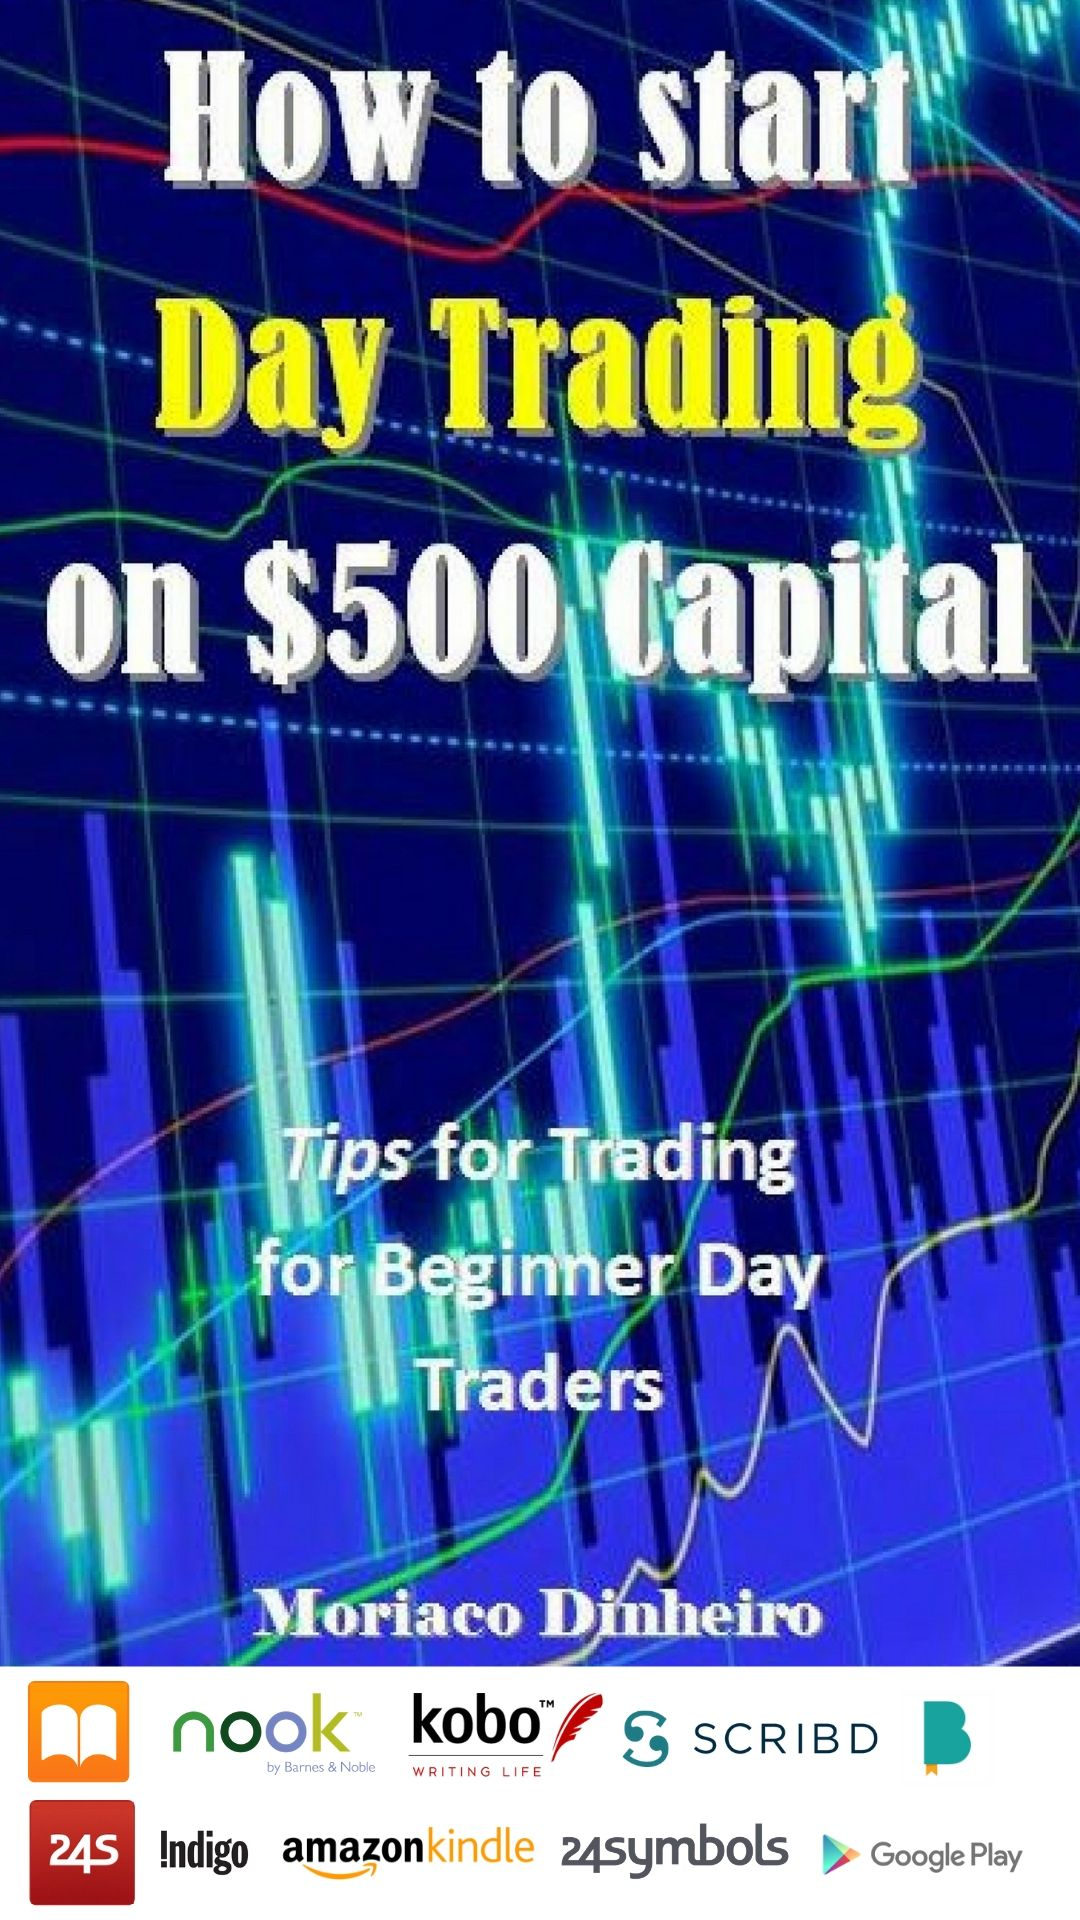 Book Of The Day Investing Books Day Trading Stock Trading